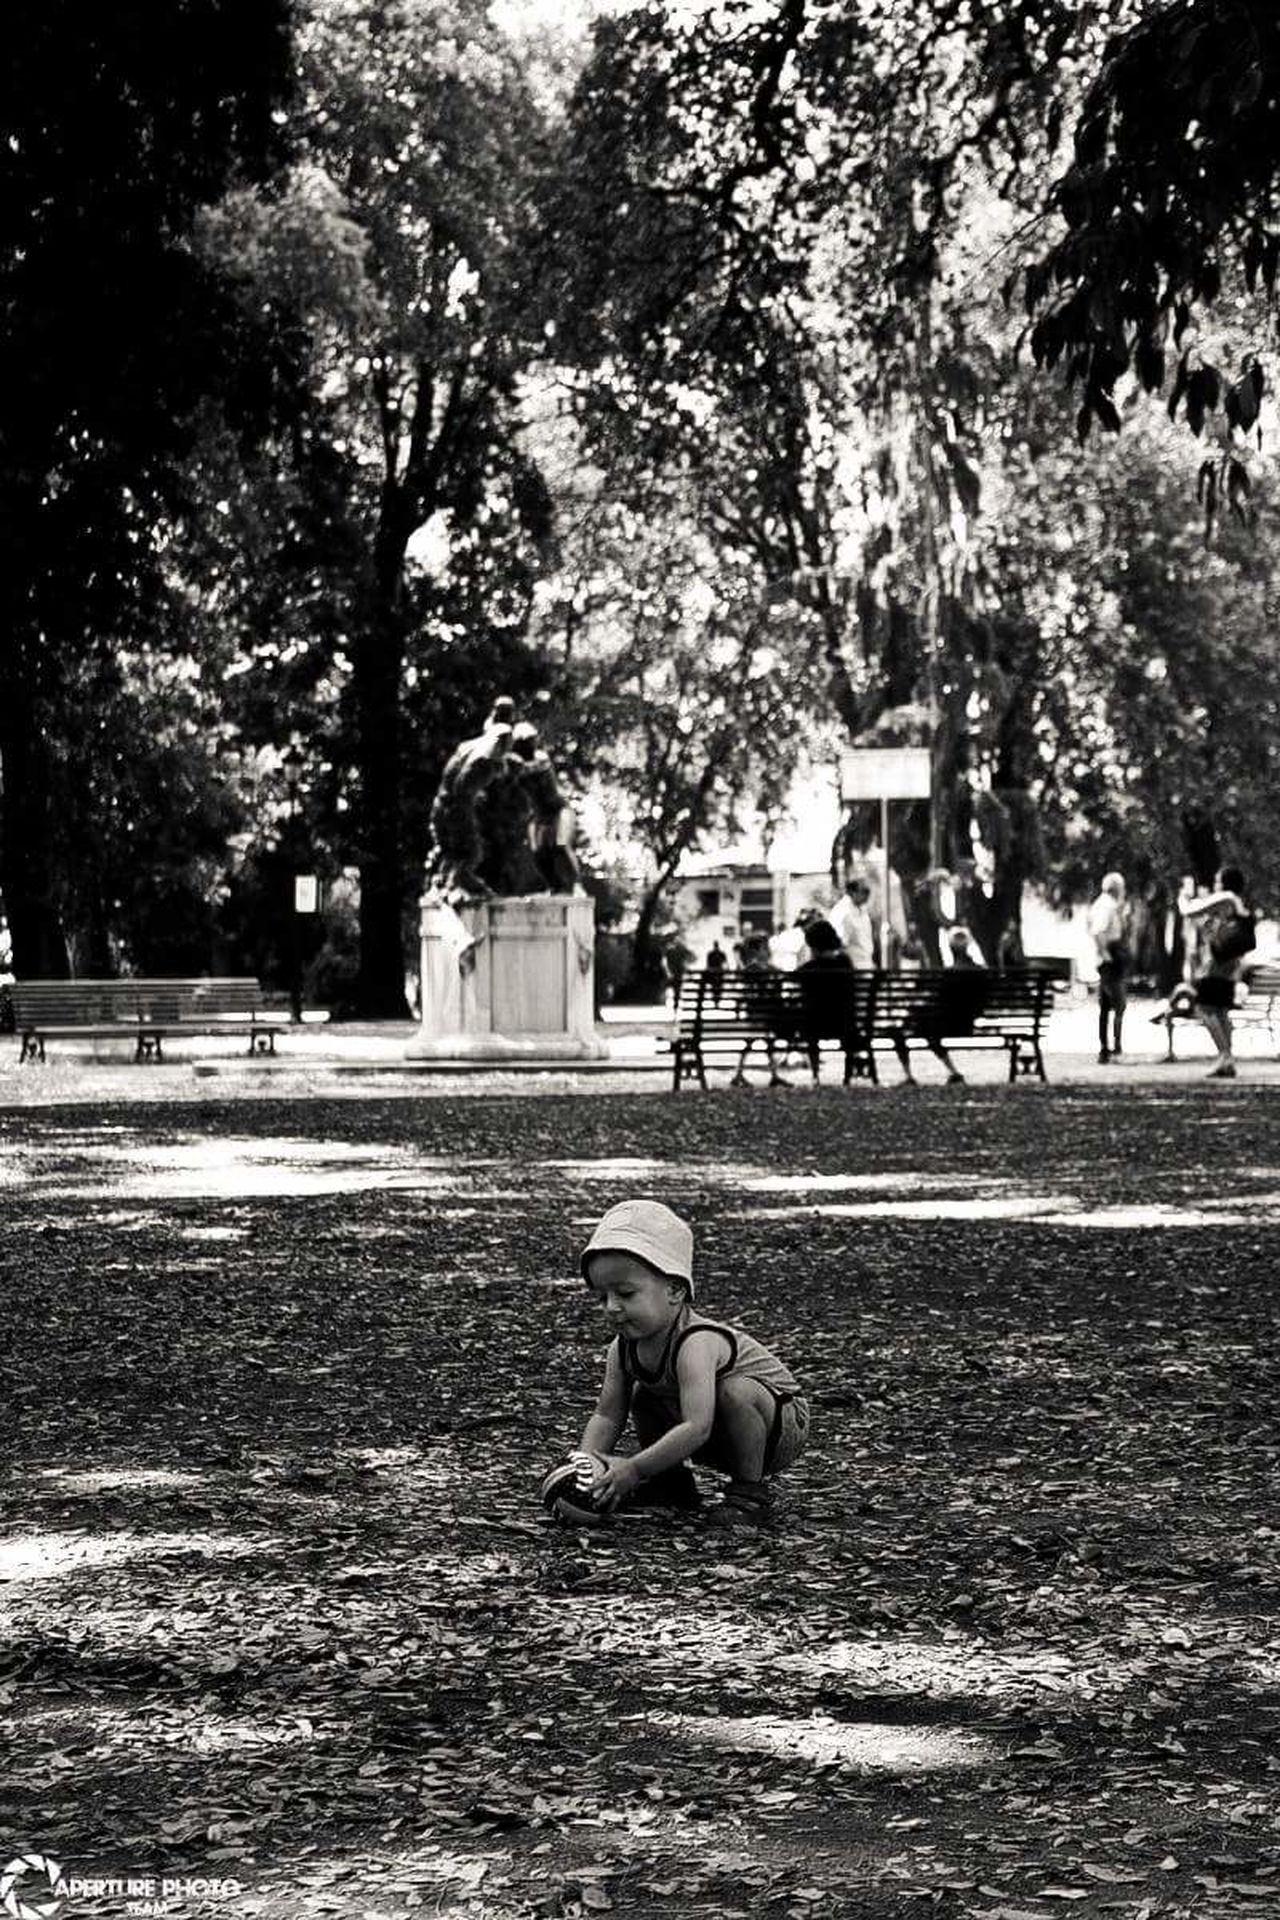 Rome Italy EyeEm Best Edits EyeEm Best Shots First Eyeem Photo EyeEm Best Shots - Black + White Black And White Street Photography Streetphotography Villa Borghese Park